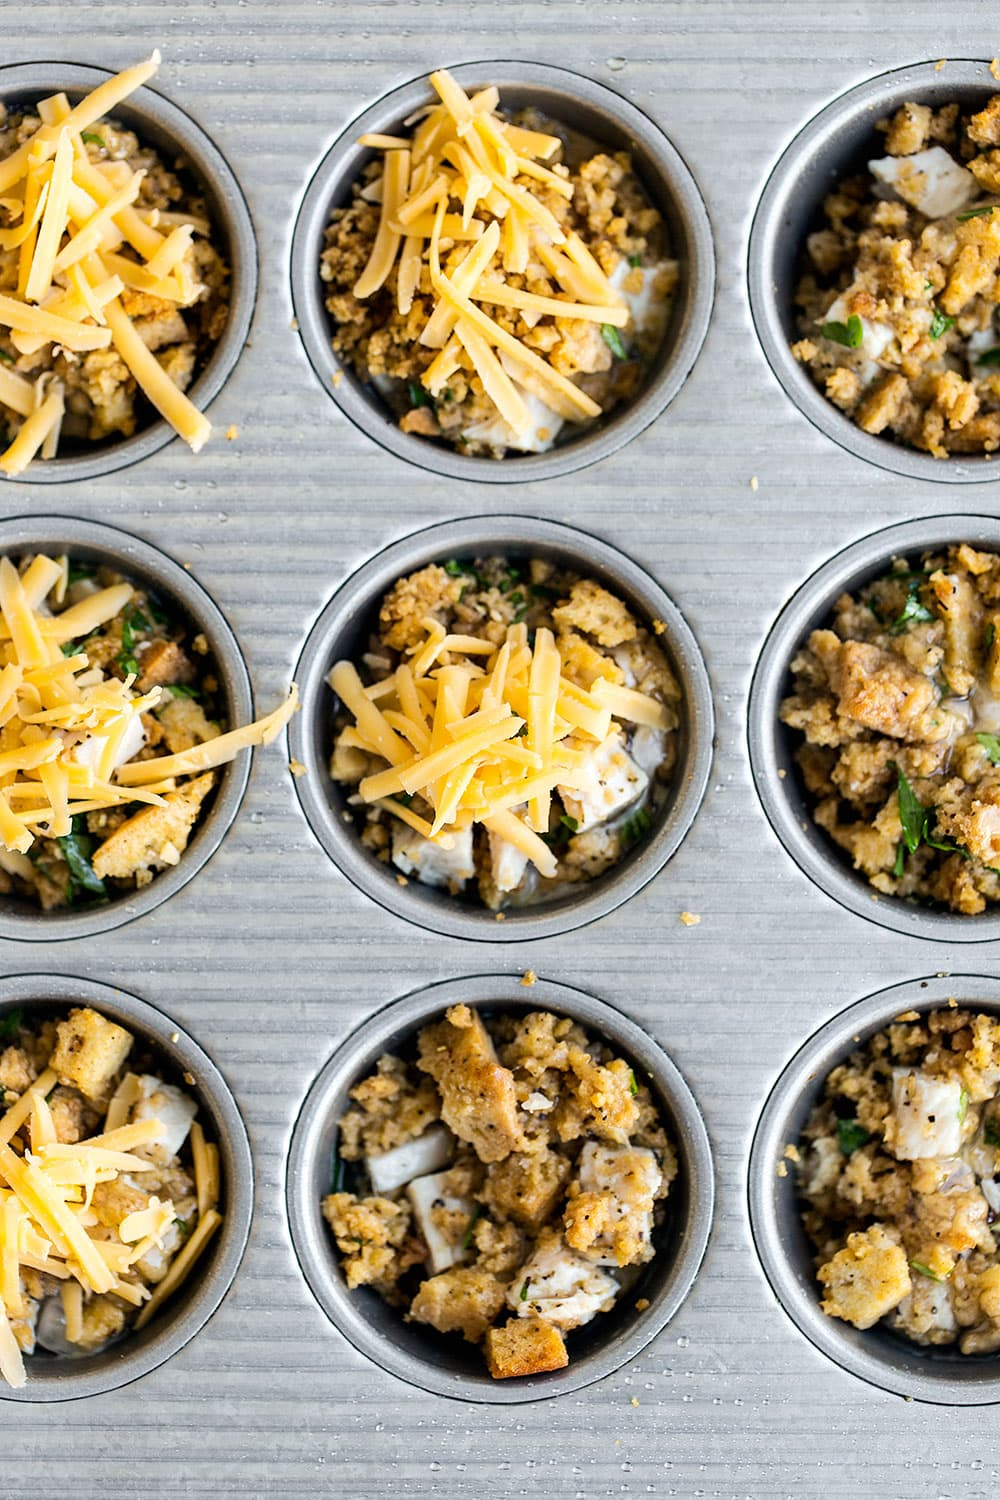 Thanksgiving Leftover Stuffing Muffins are made in minutes with leftover stuffing and turkey for a tasty breakfast or snack that you can dip in cranberry sauce or gravy!